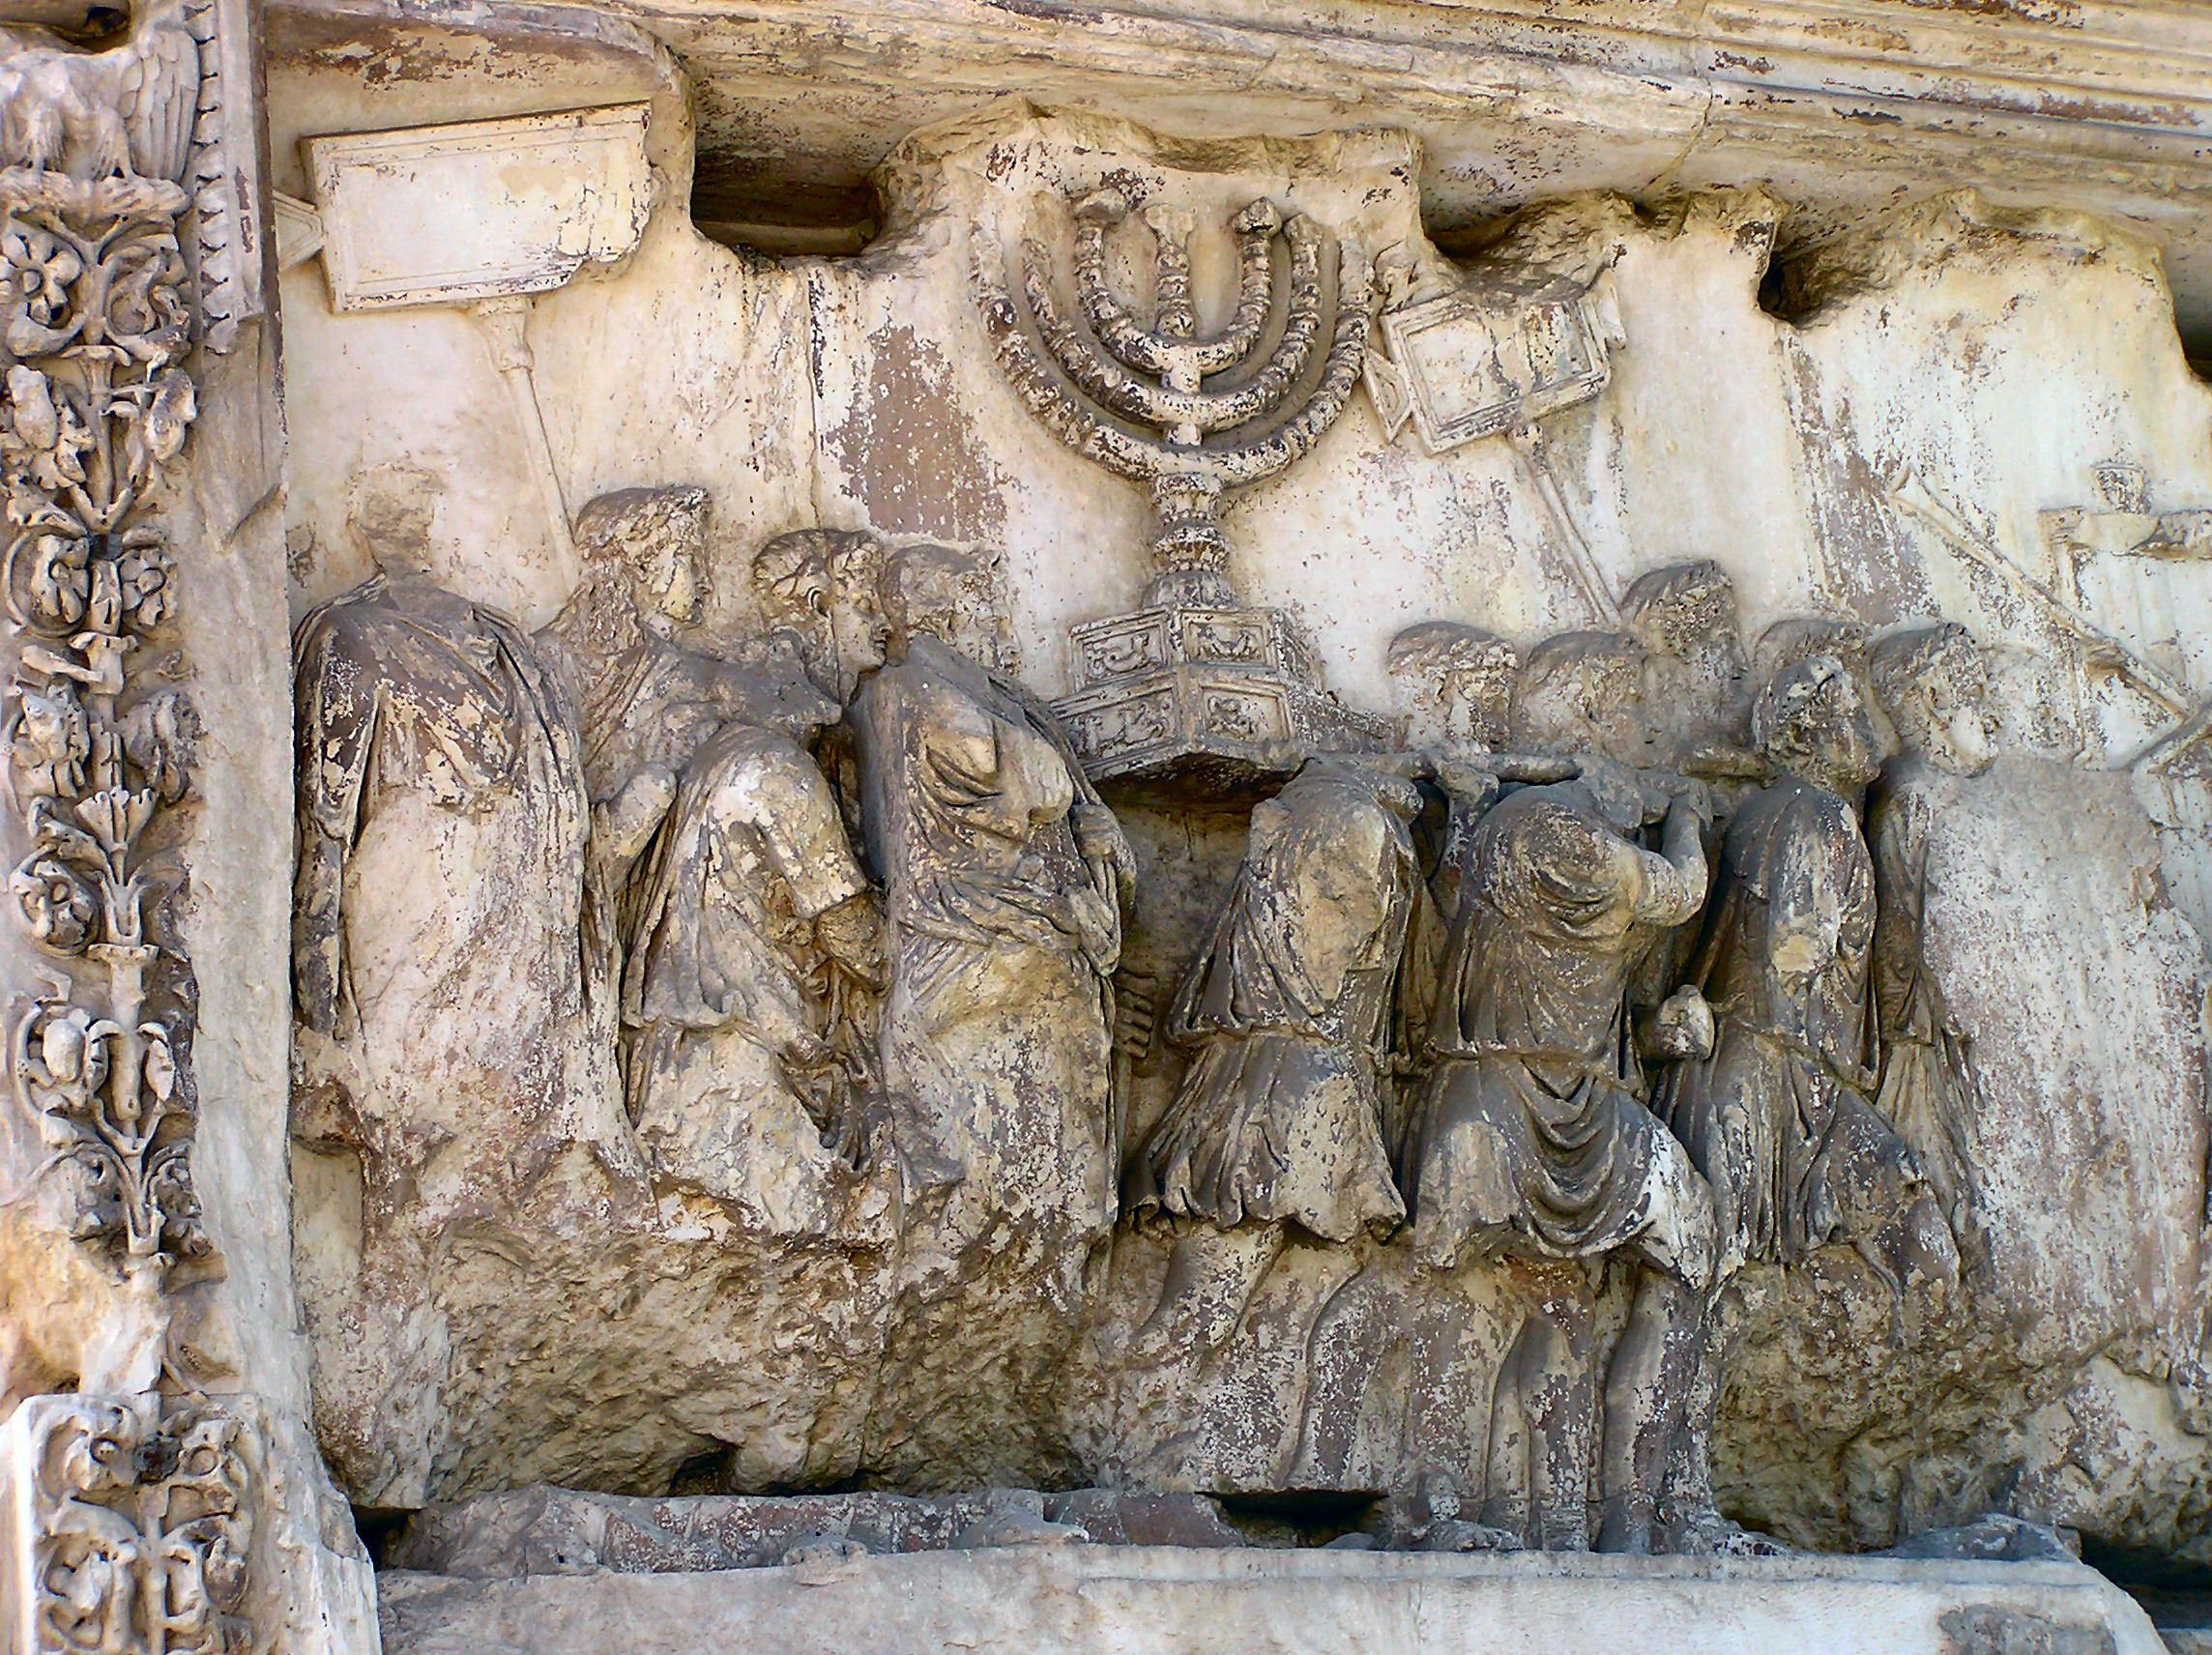 Arch of Titus, Rome, Triumphal parade, menorah from the temple in Jerusalem